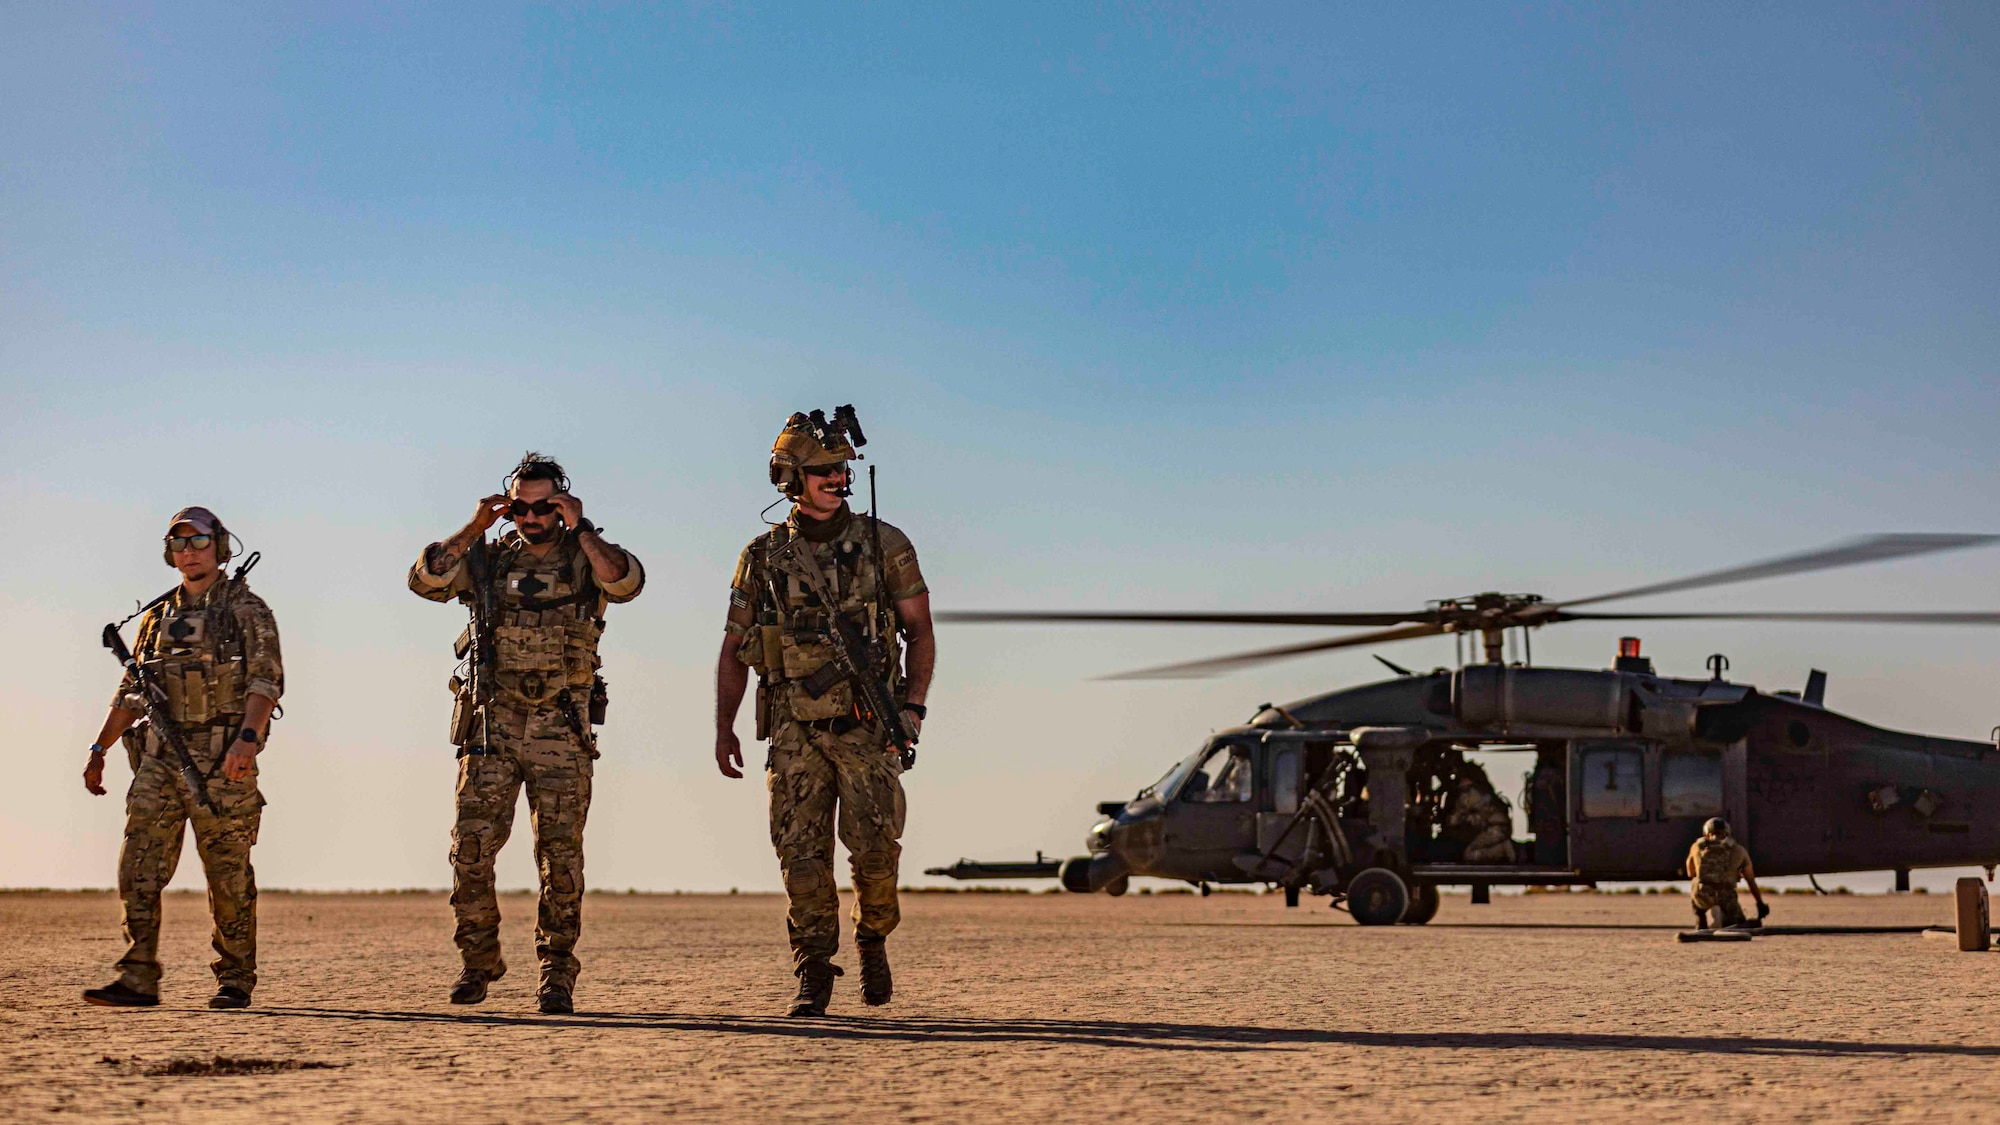 Airmen with the 26th Expeditionary Rescue Squadron conduct refueling operations